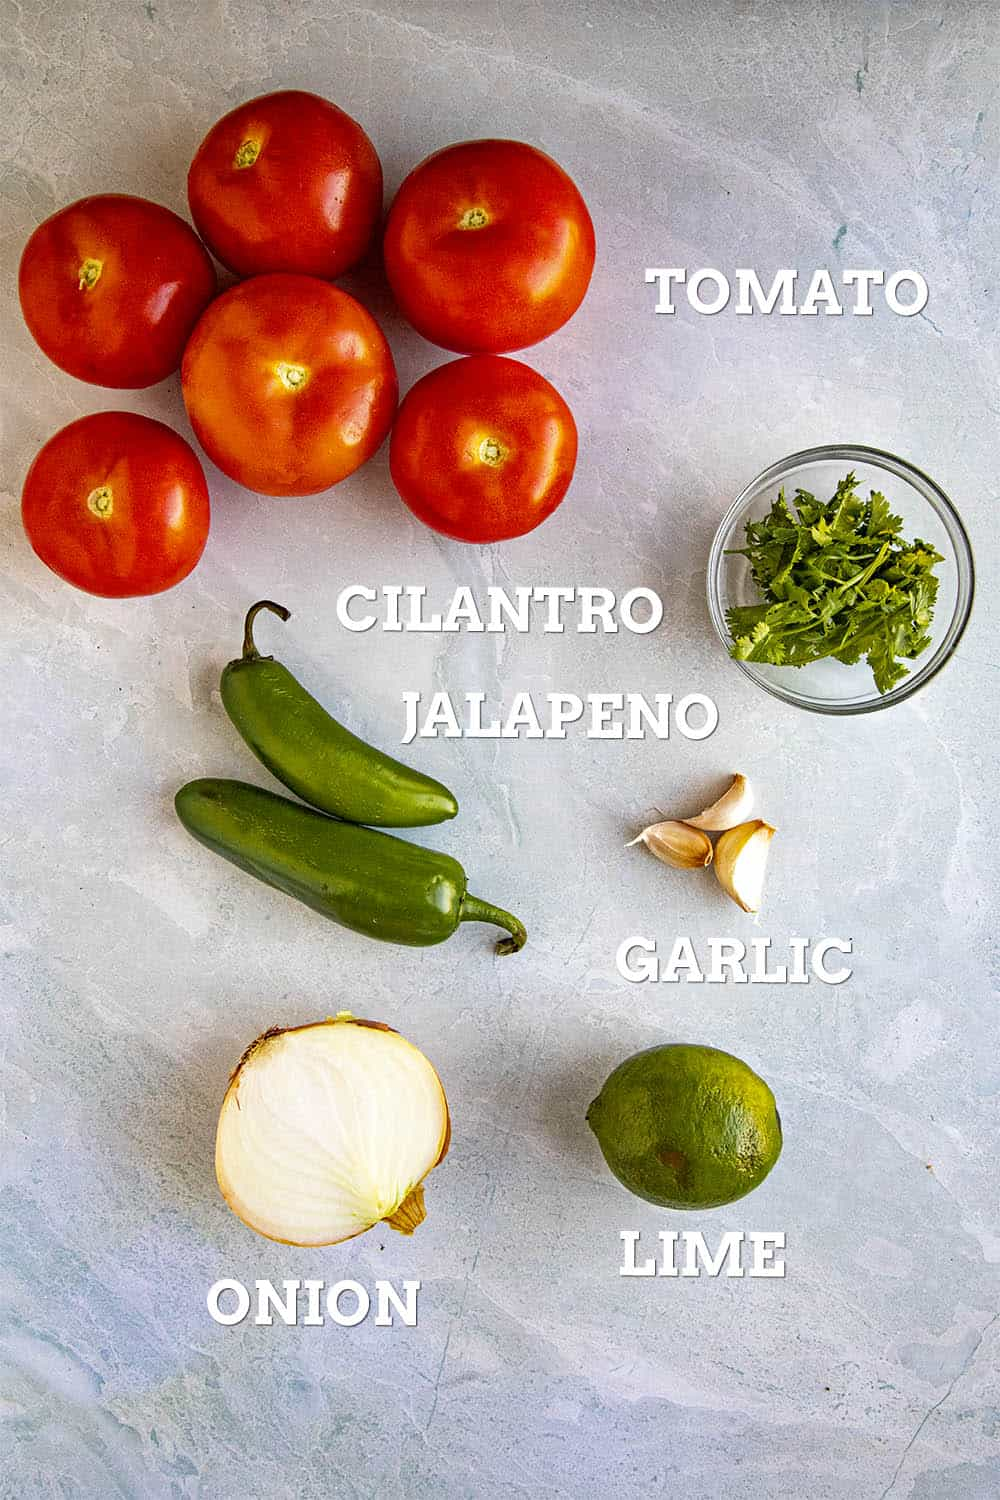 Ingredients for making salsa roja, including tomato, cilantro, jalapeno, onion, garlic and lime